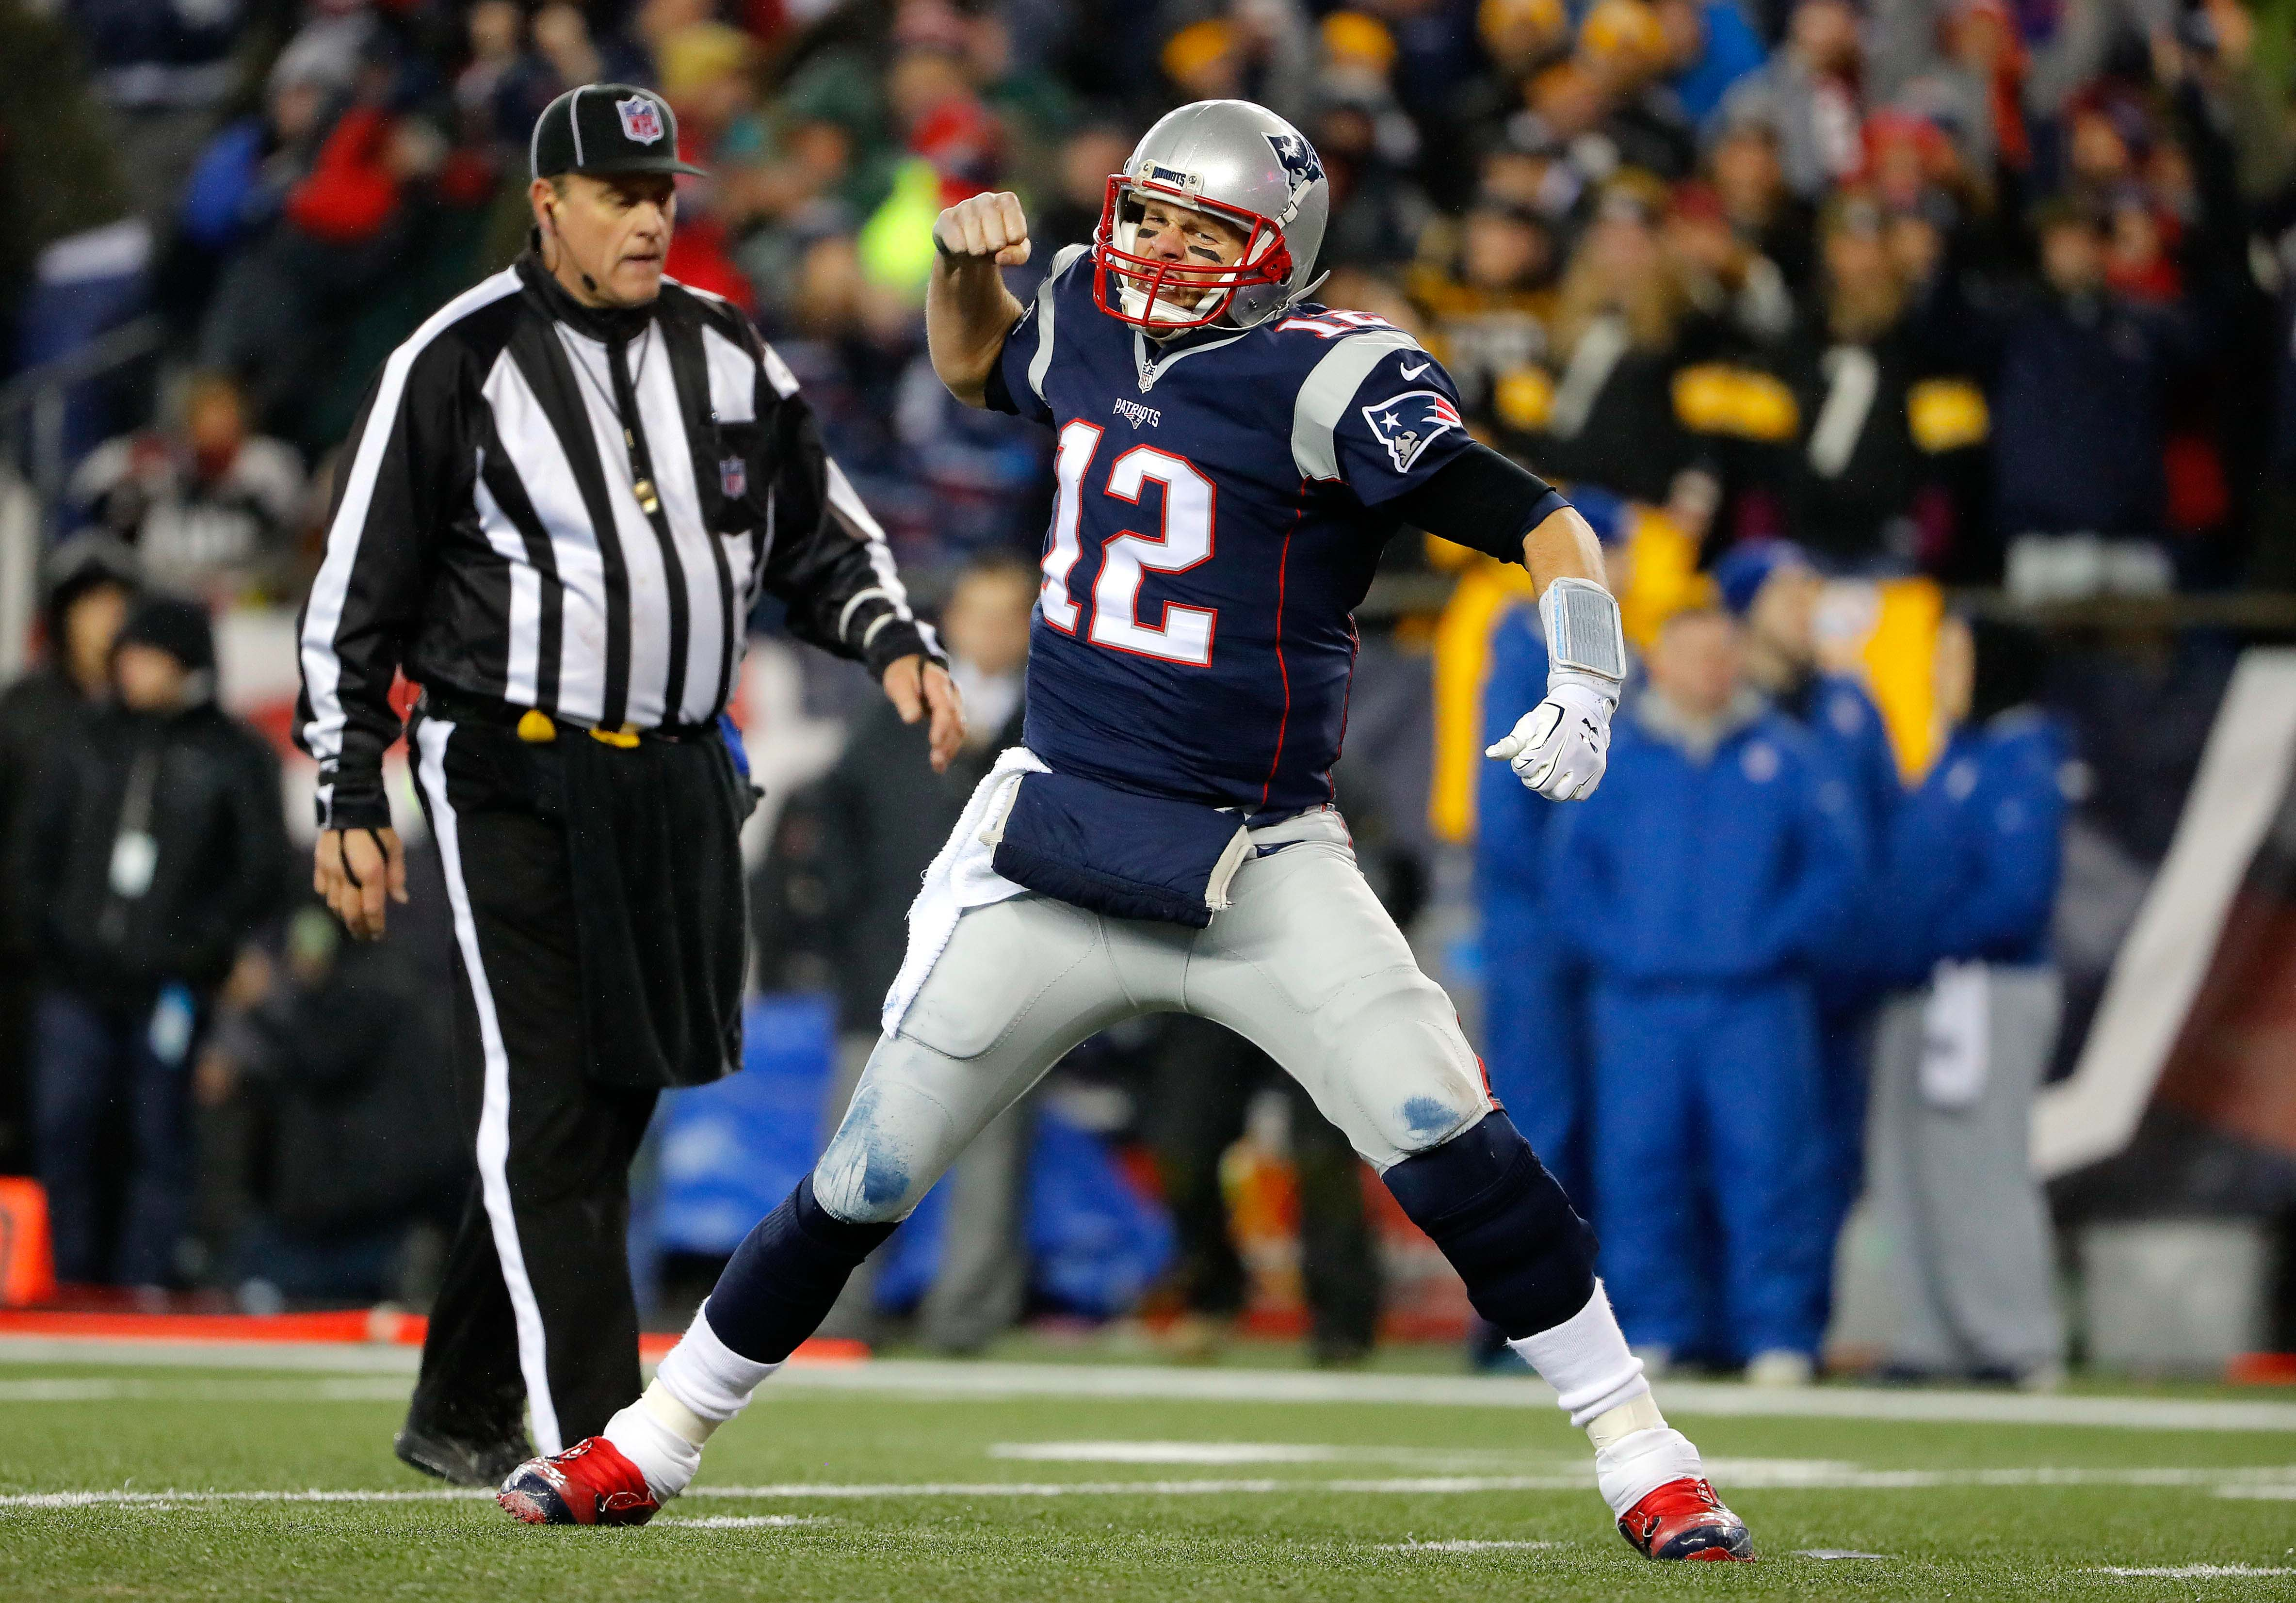 9842758-nfl-afc-championship-pittsburgh-steelers-at-new-england-patriots